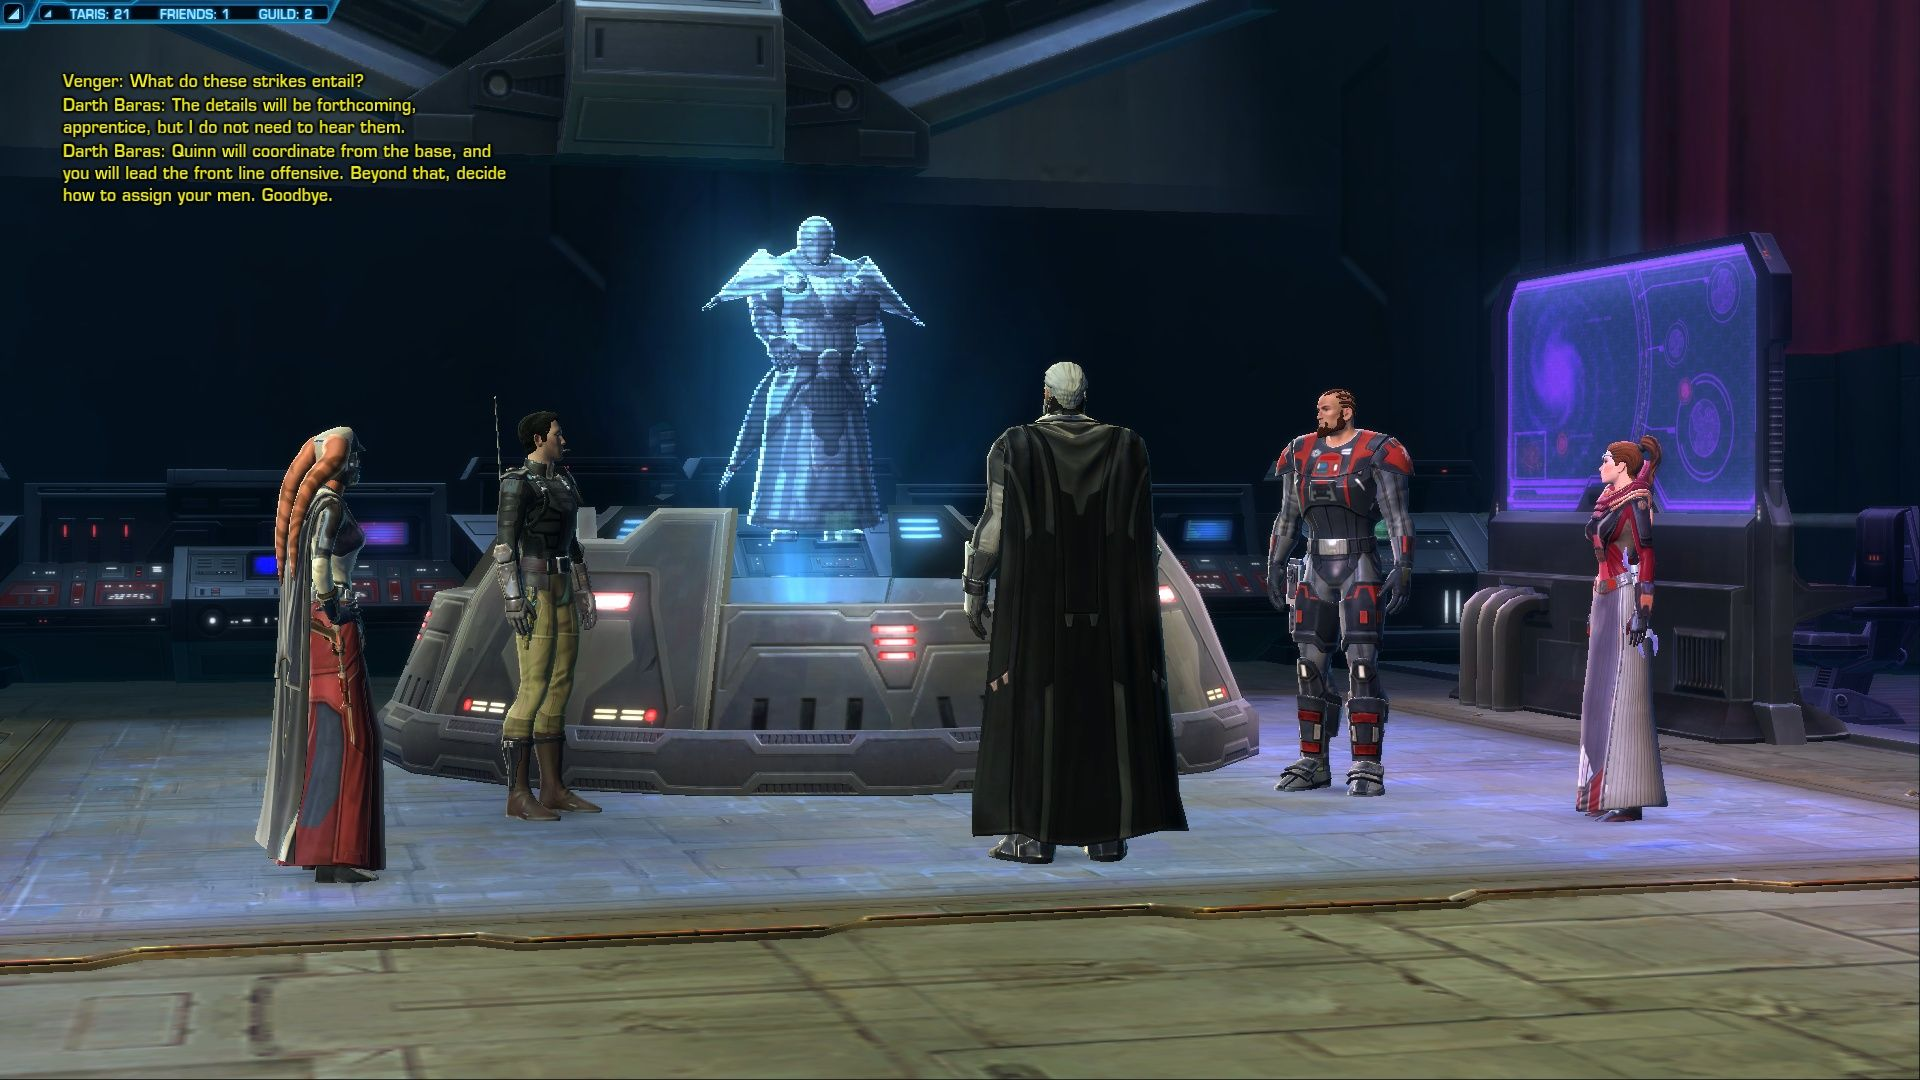 NA SWTOR JUST WALK AWAY